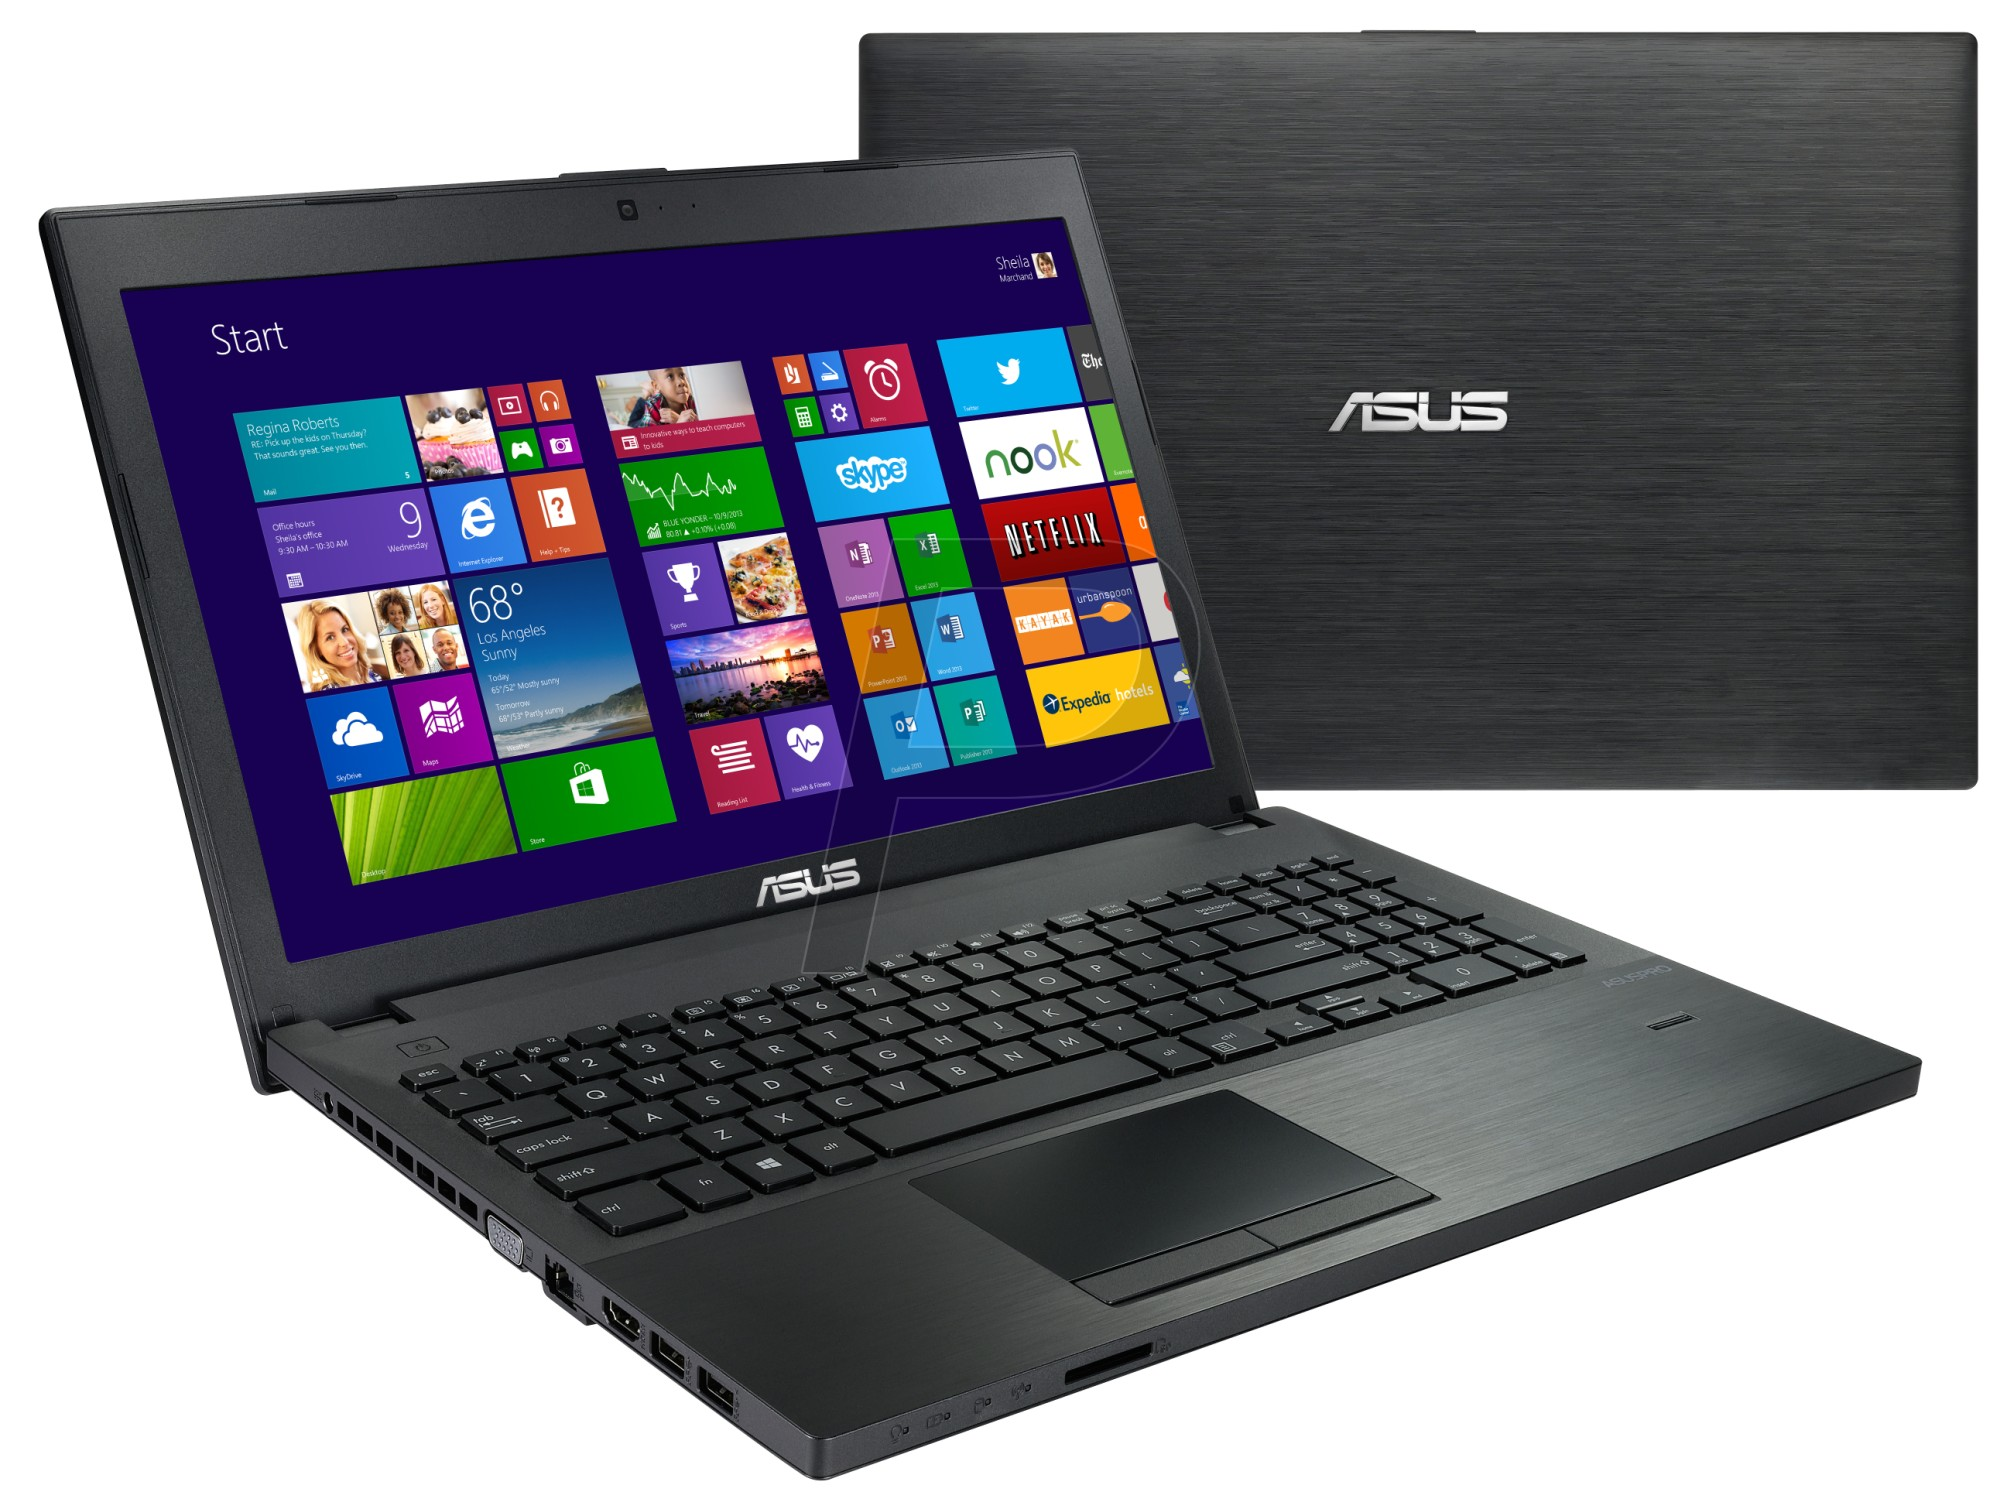 Asus PU401LA-WO139D (Intel Core i5-4210U 1.7GHz, 4GB RAM, 500GB HDD, VGA Intel HD Graphics 4400, 14 inch, Free Dos)